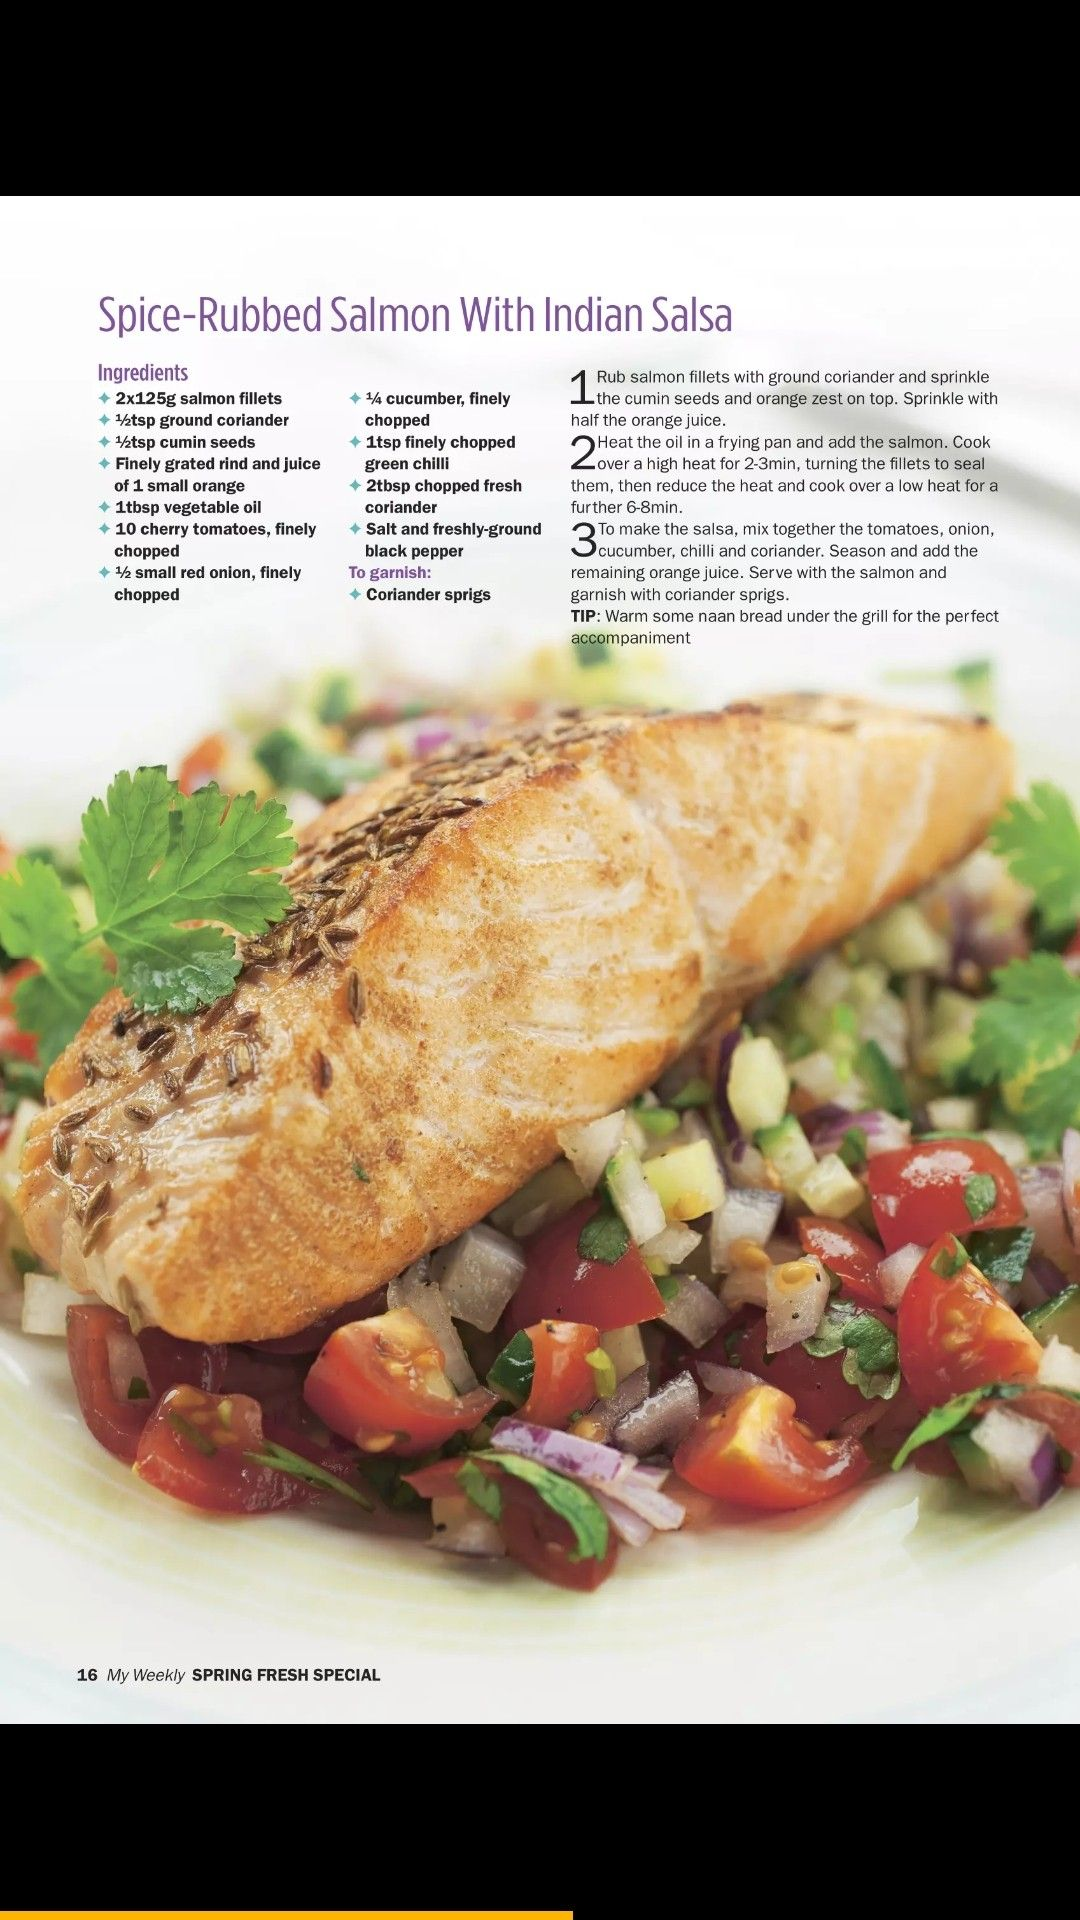 spiced rubbed salmon with indian salsa various fish recipes in